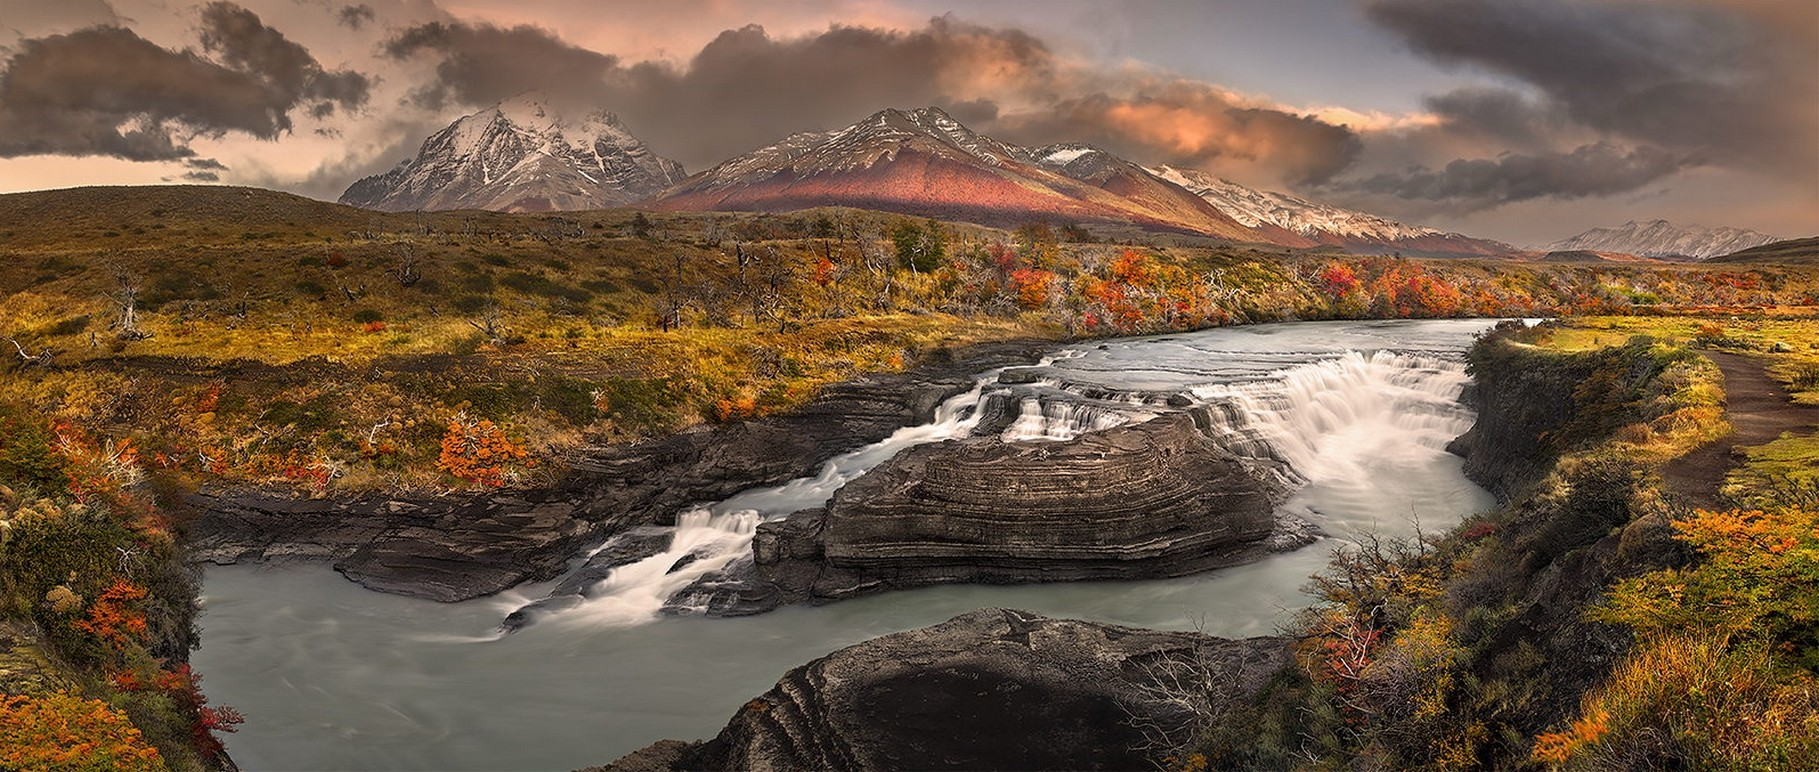 General 1819x772 landscape nature panoramas river rapids grass shrubs mountains clouds fall snowy peak Patagonia Chile